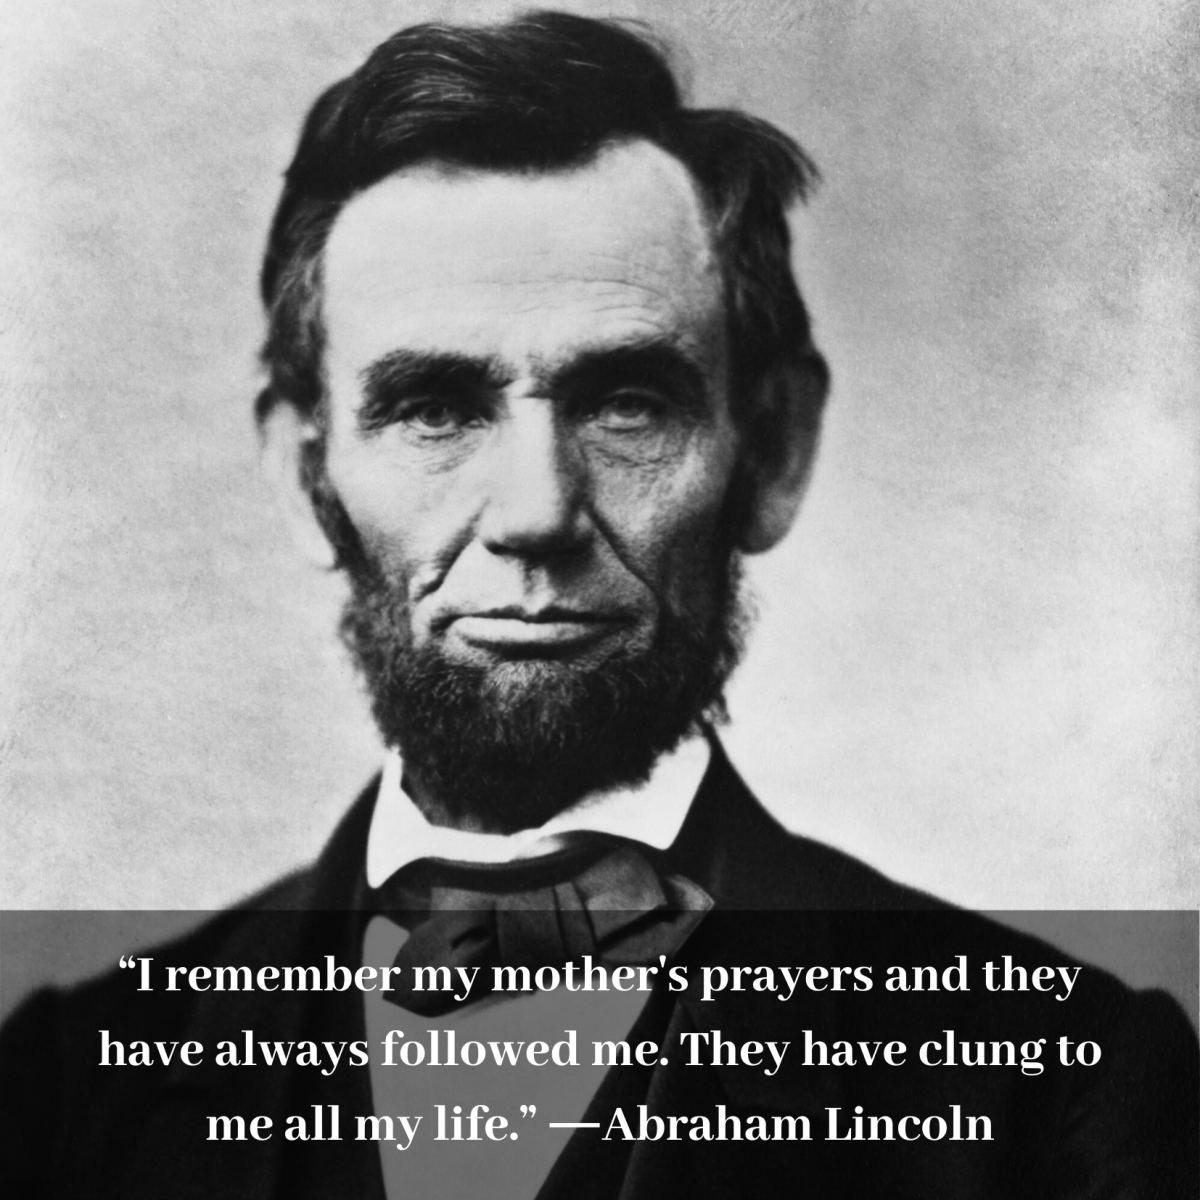 """I remember my mother's prayers and they have always followed me. They have clung to me all my life."" ―Abraham Lincoln"